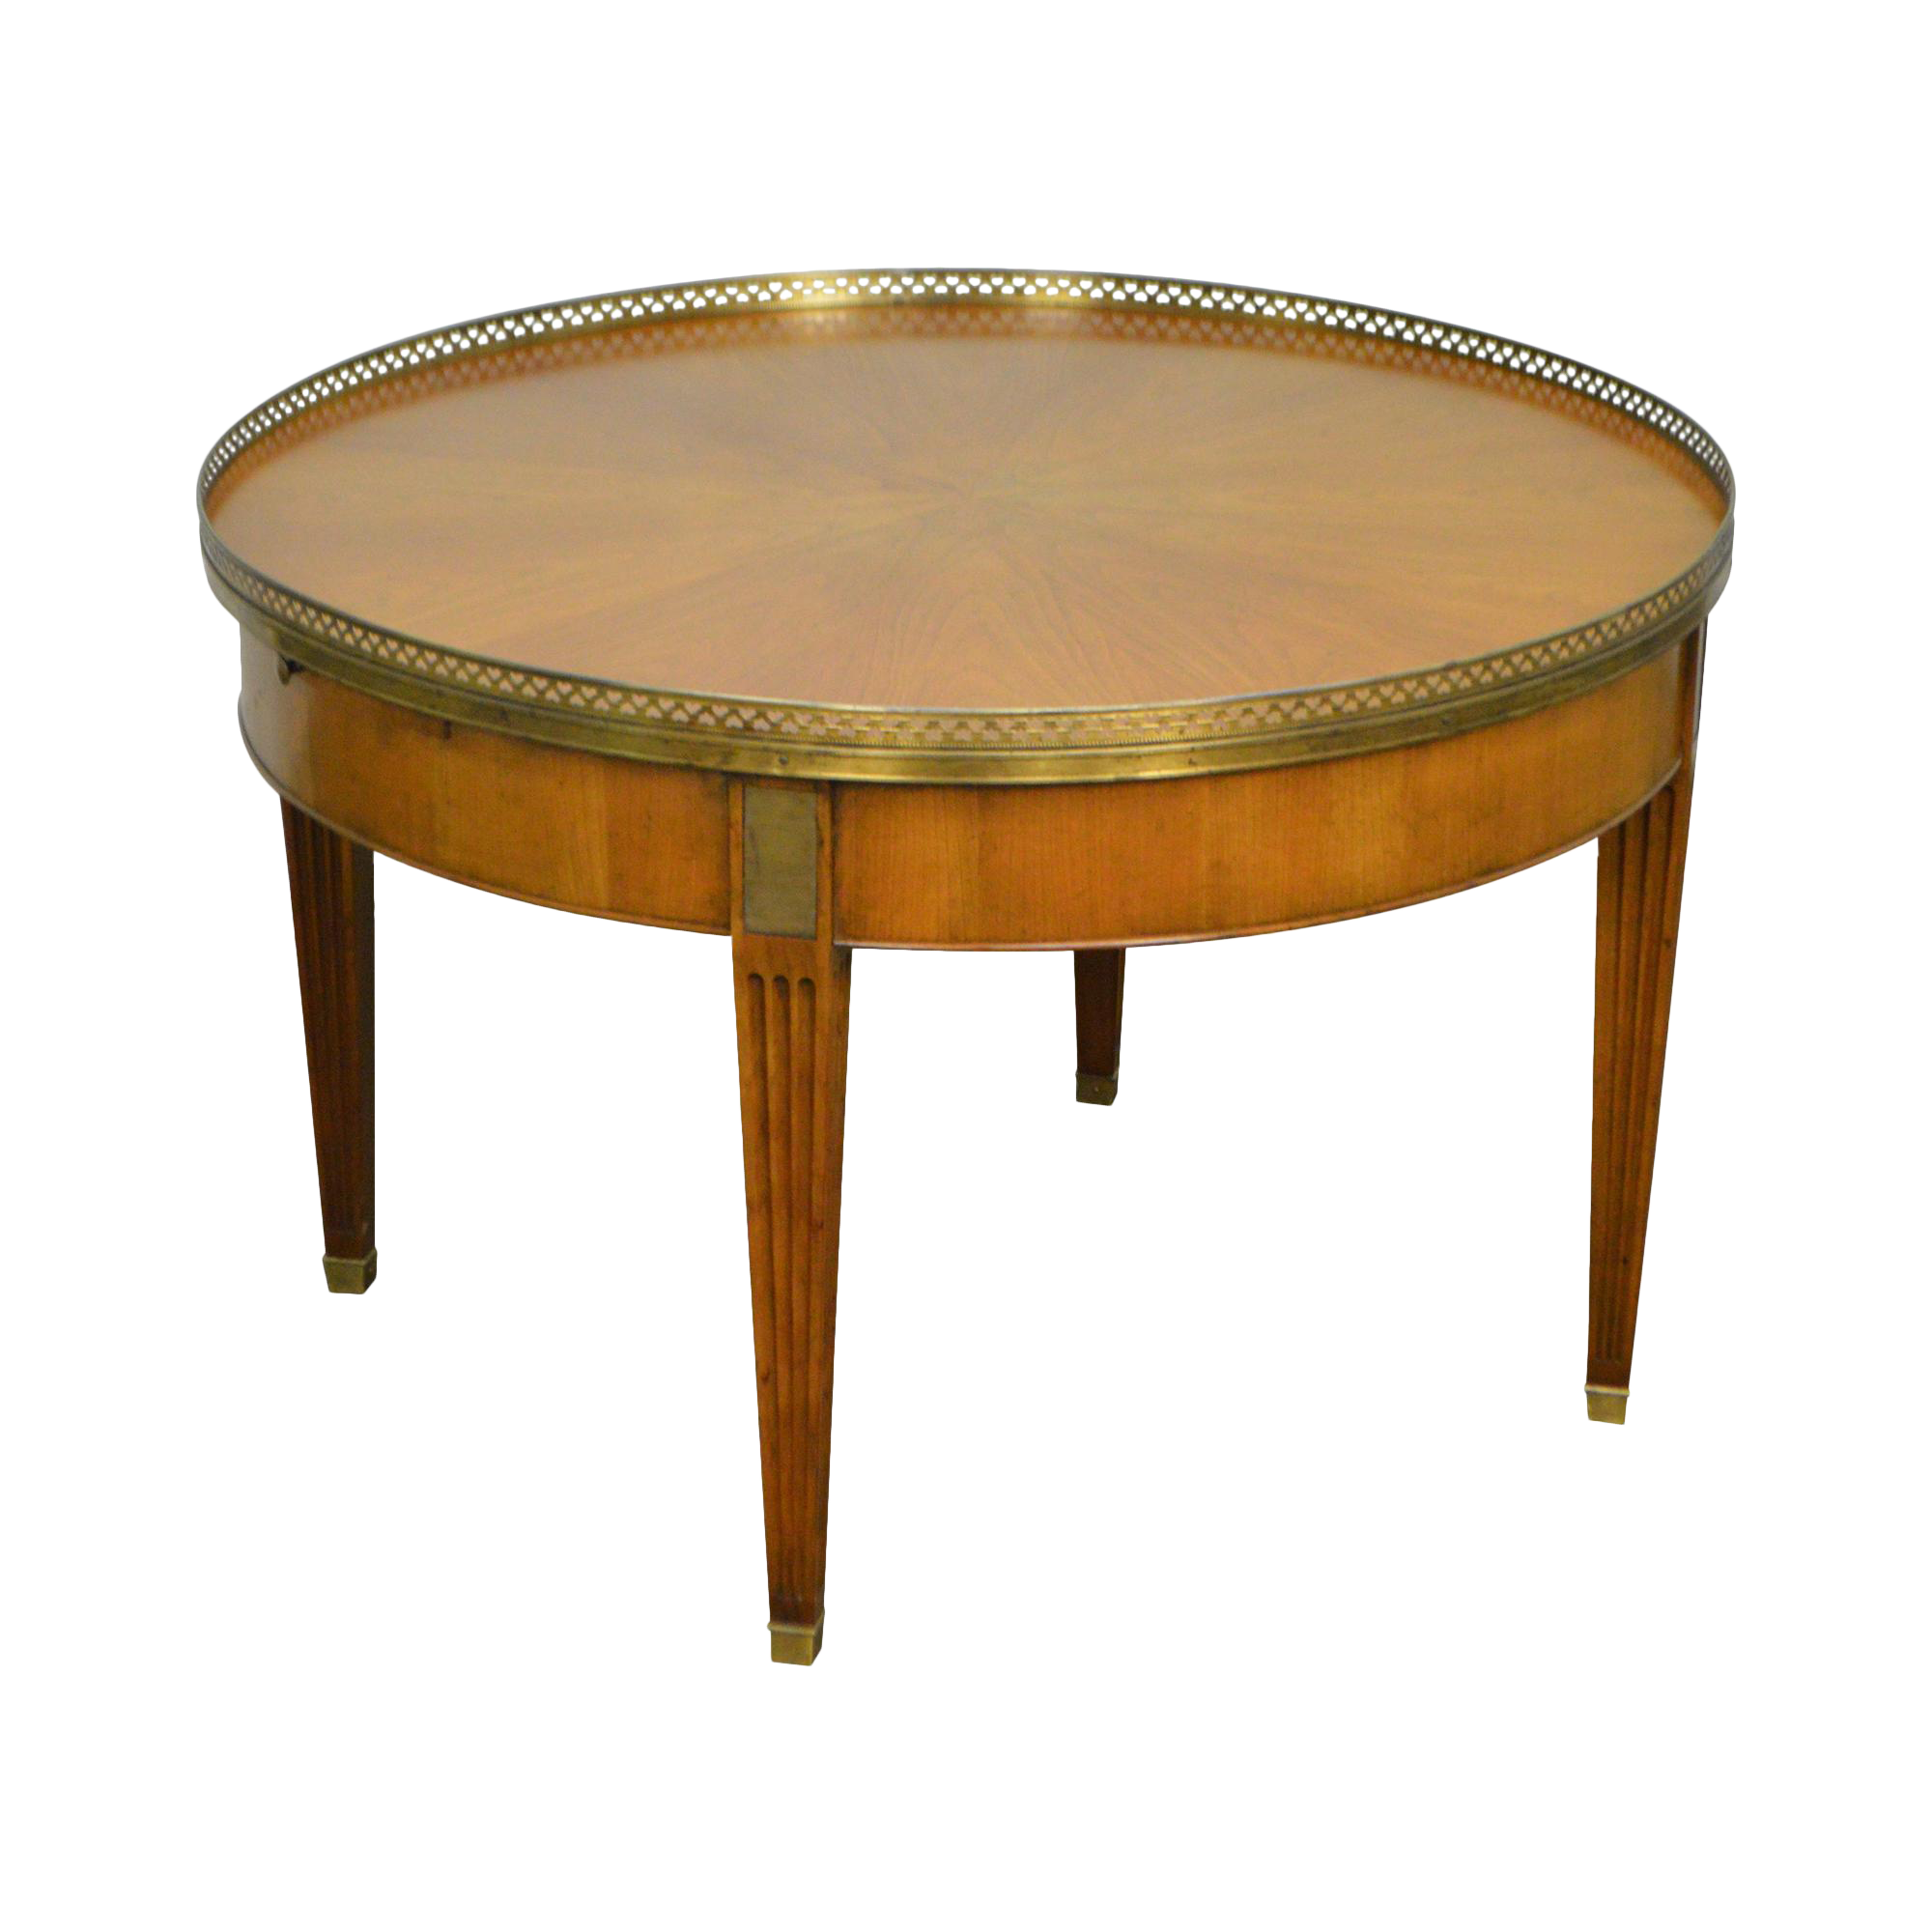 Vintage & Used Baker Furniture pany Coffee Tables